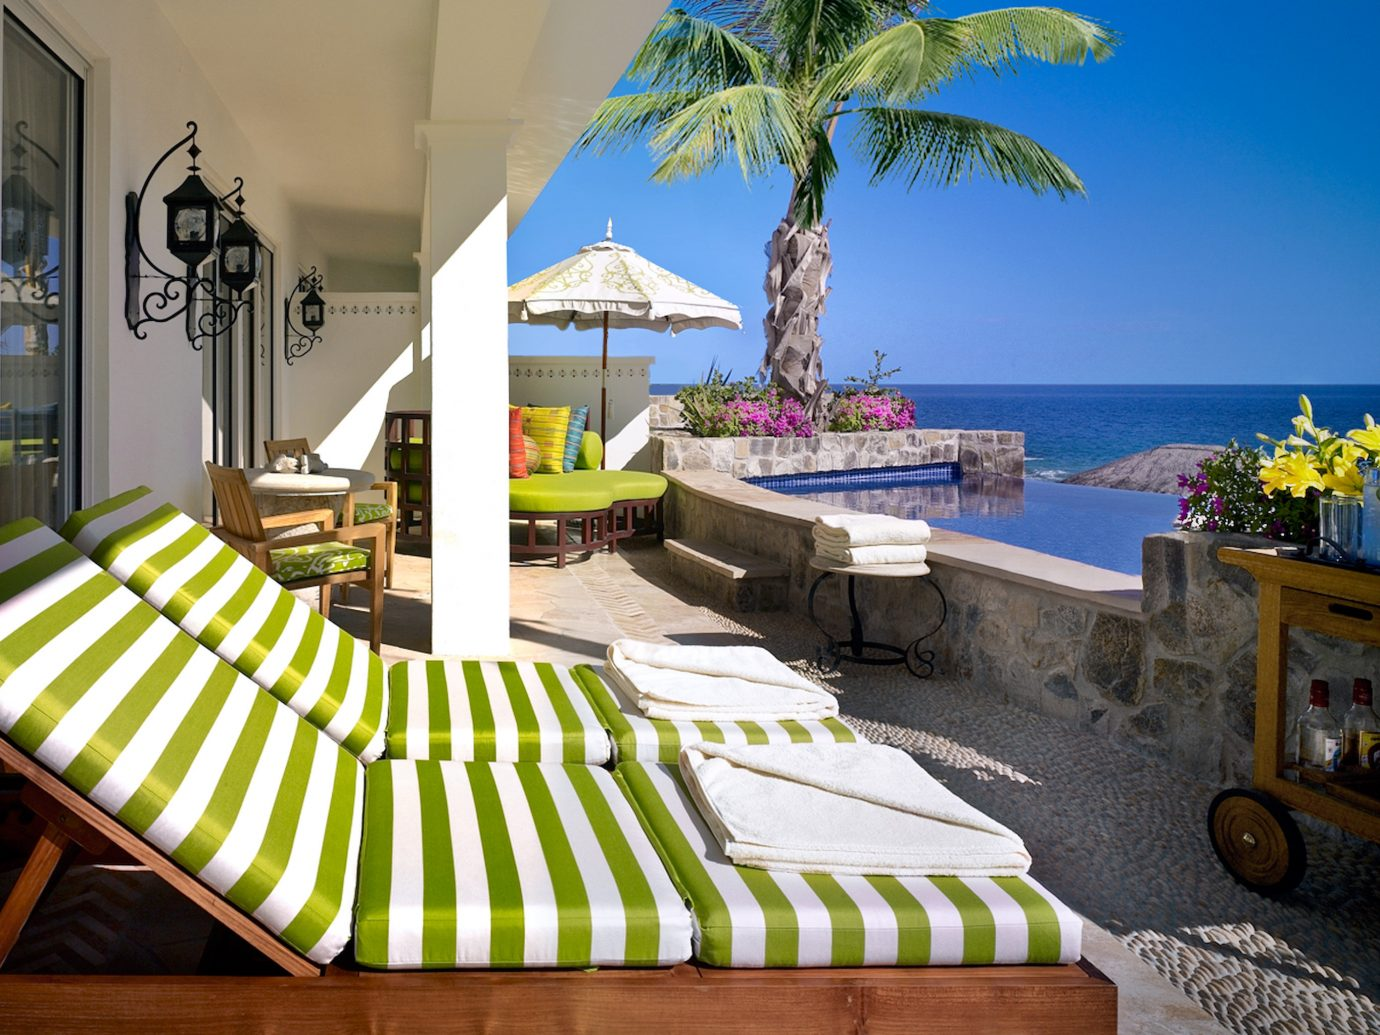 Beachfront Celebs Hotels Living Patio Pool Resort Trip Ideas leisure property outdoor room vacation estate home Villa condominium caribbean interior design swimming pool cottage decorated apartment hotel plant furniture lined